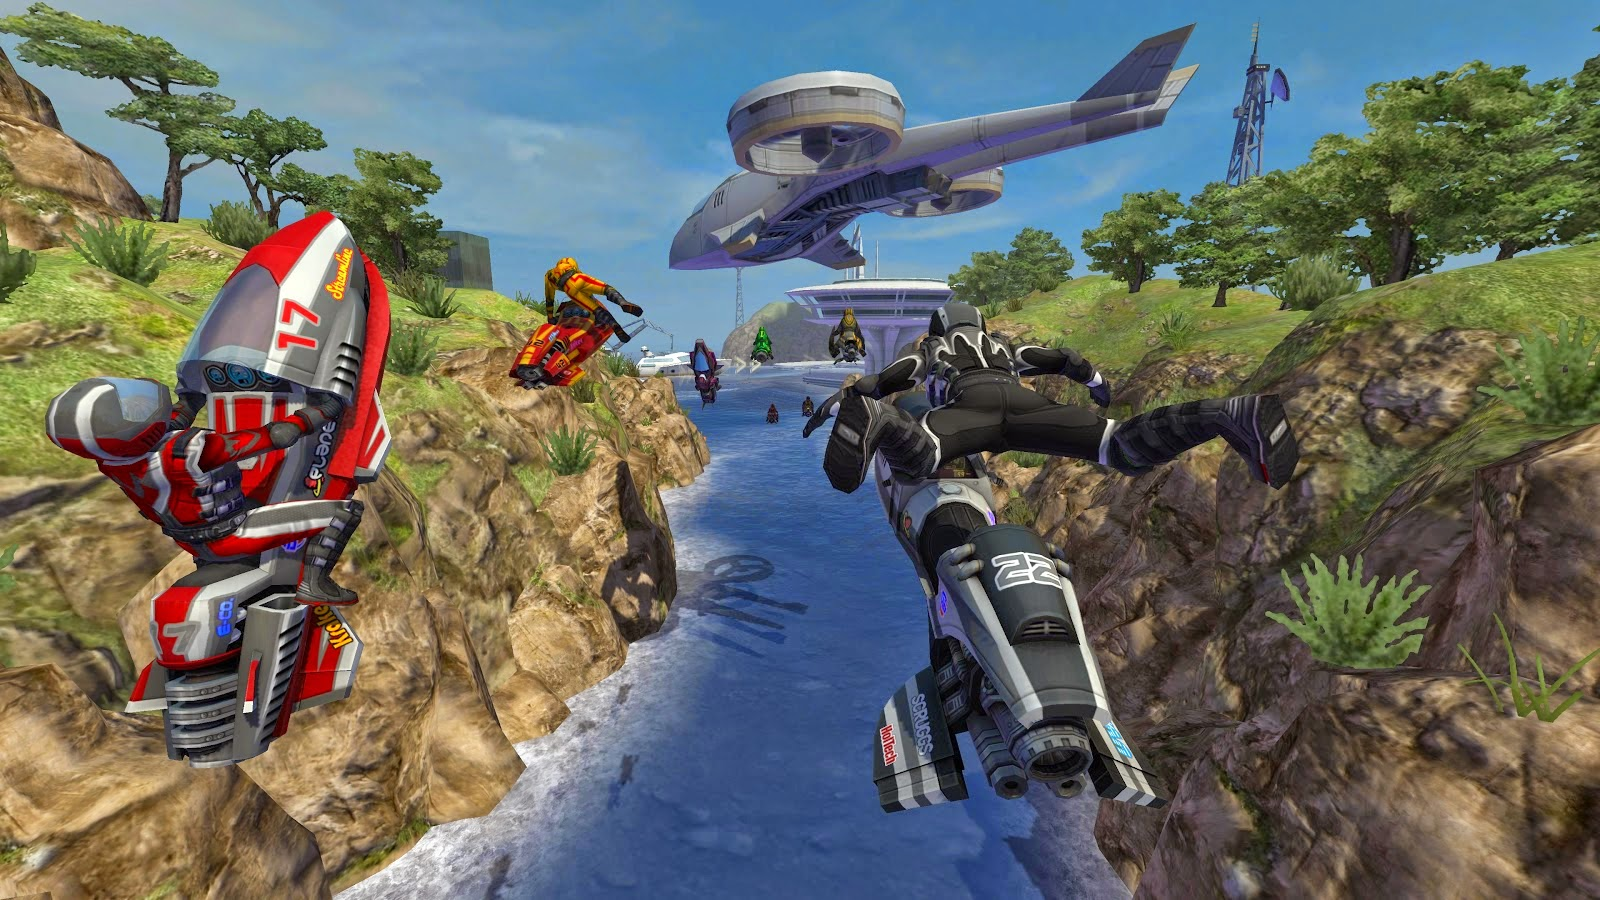 vRiptide GP2, Game Balapan Jet Air Seru